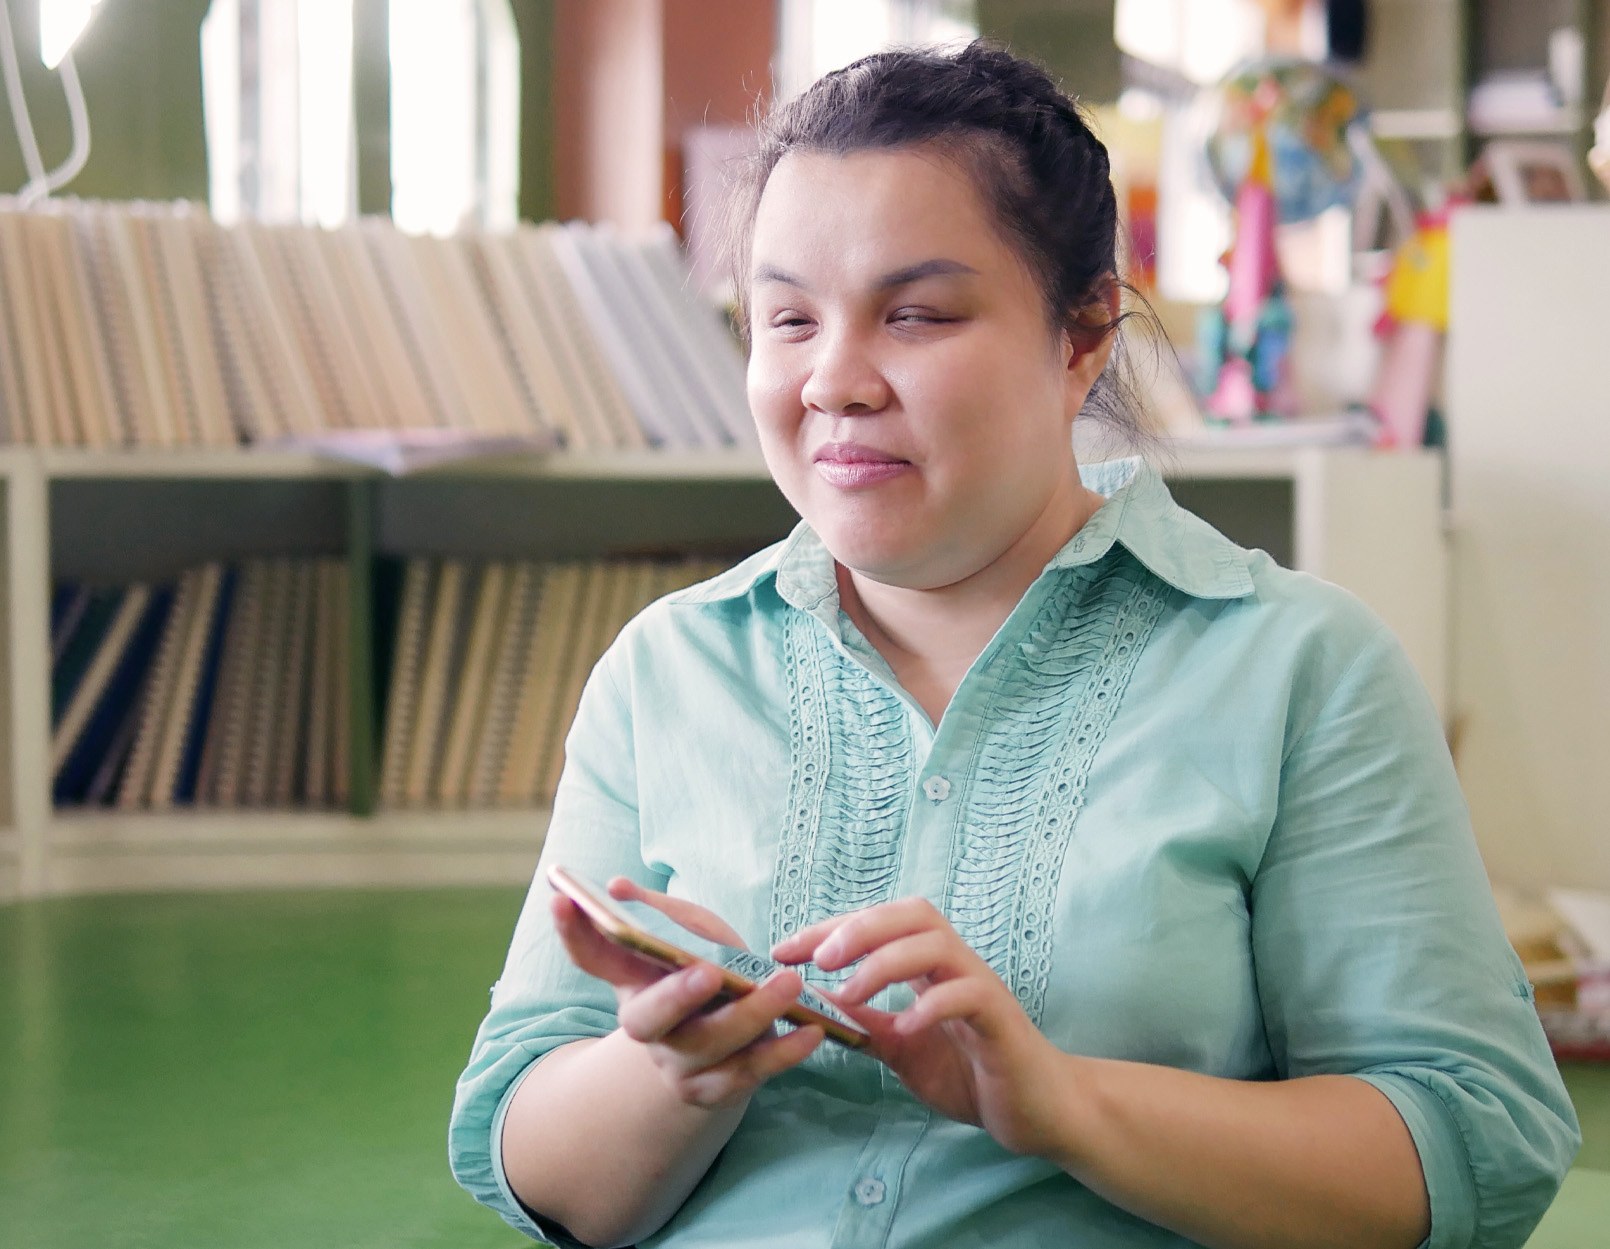 Woman using voice over to type on her smartphone